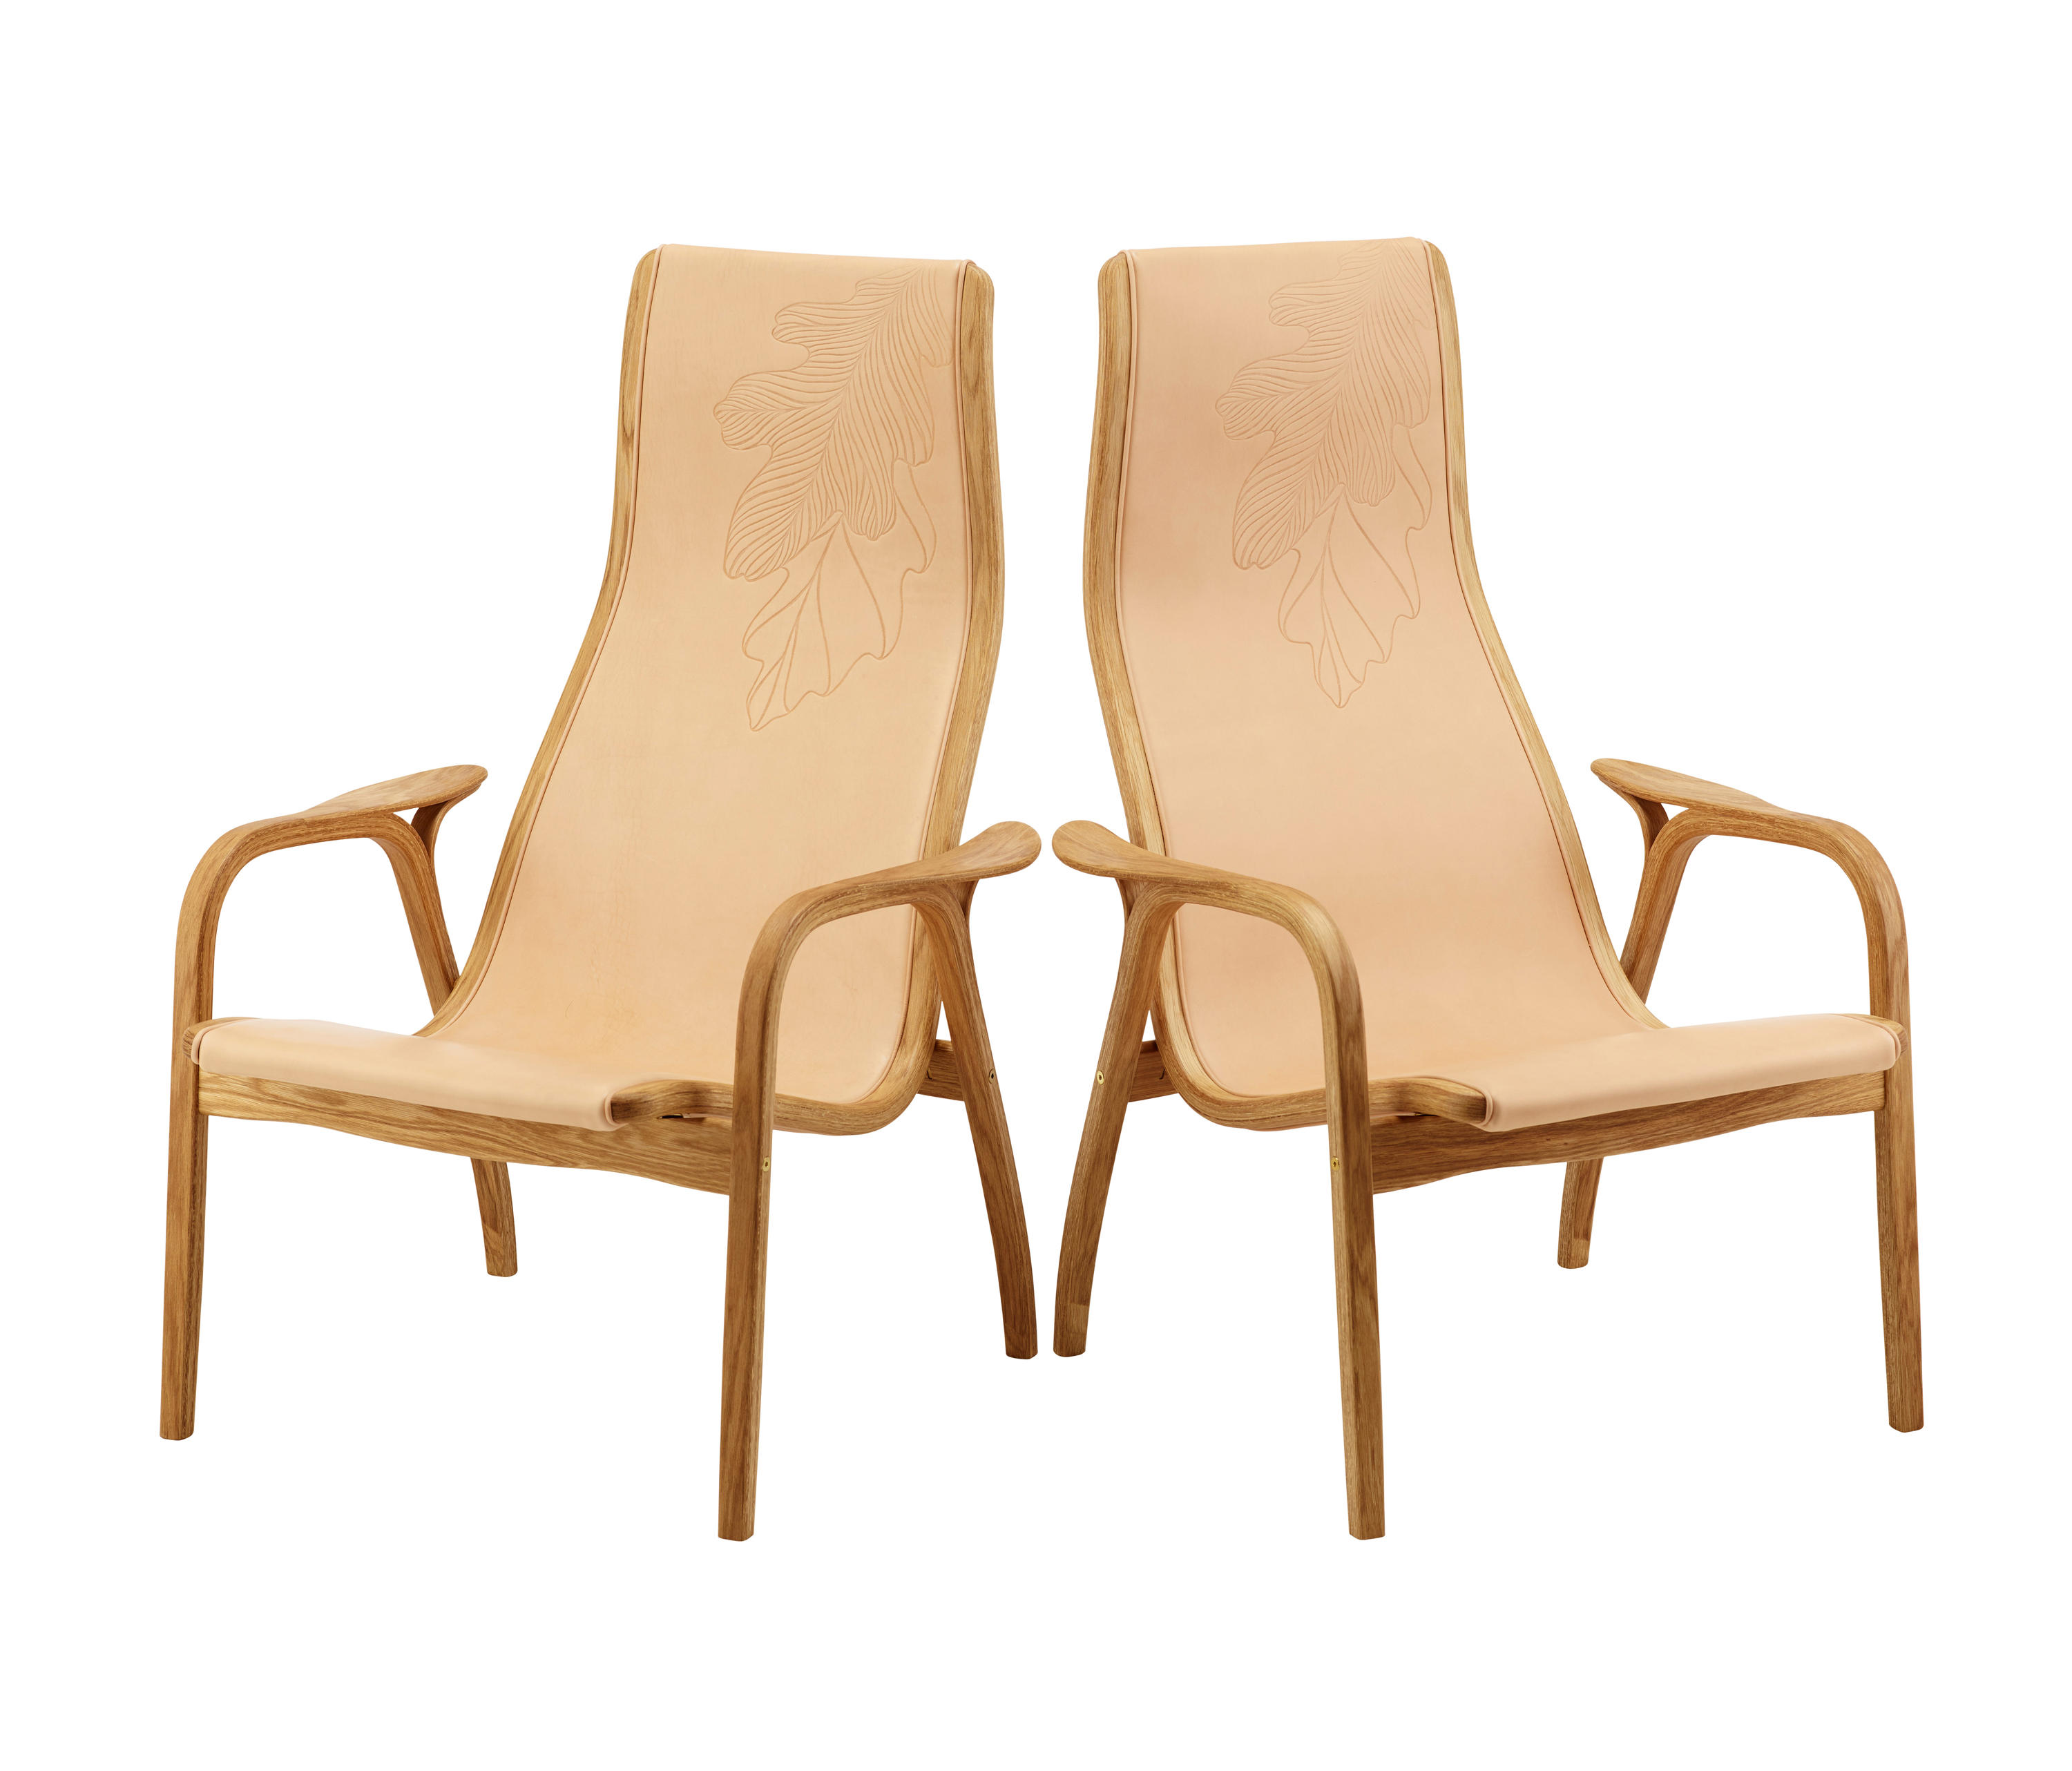 LAMINO 60 EASY CHAIR Lounge chairs from Swedese Architonic